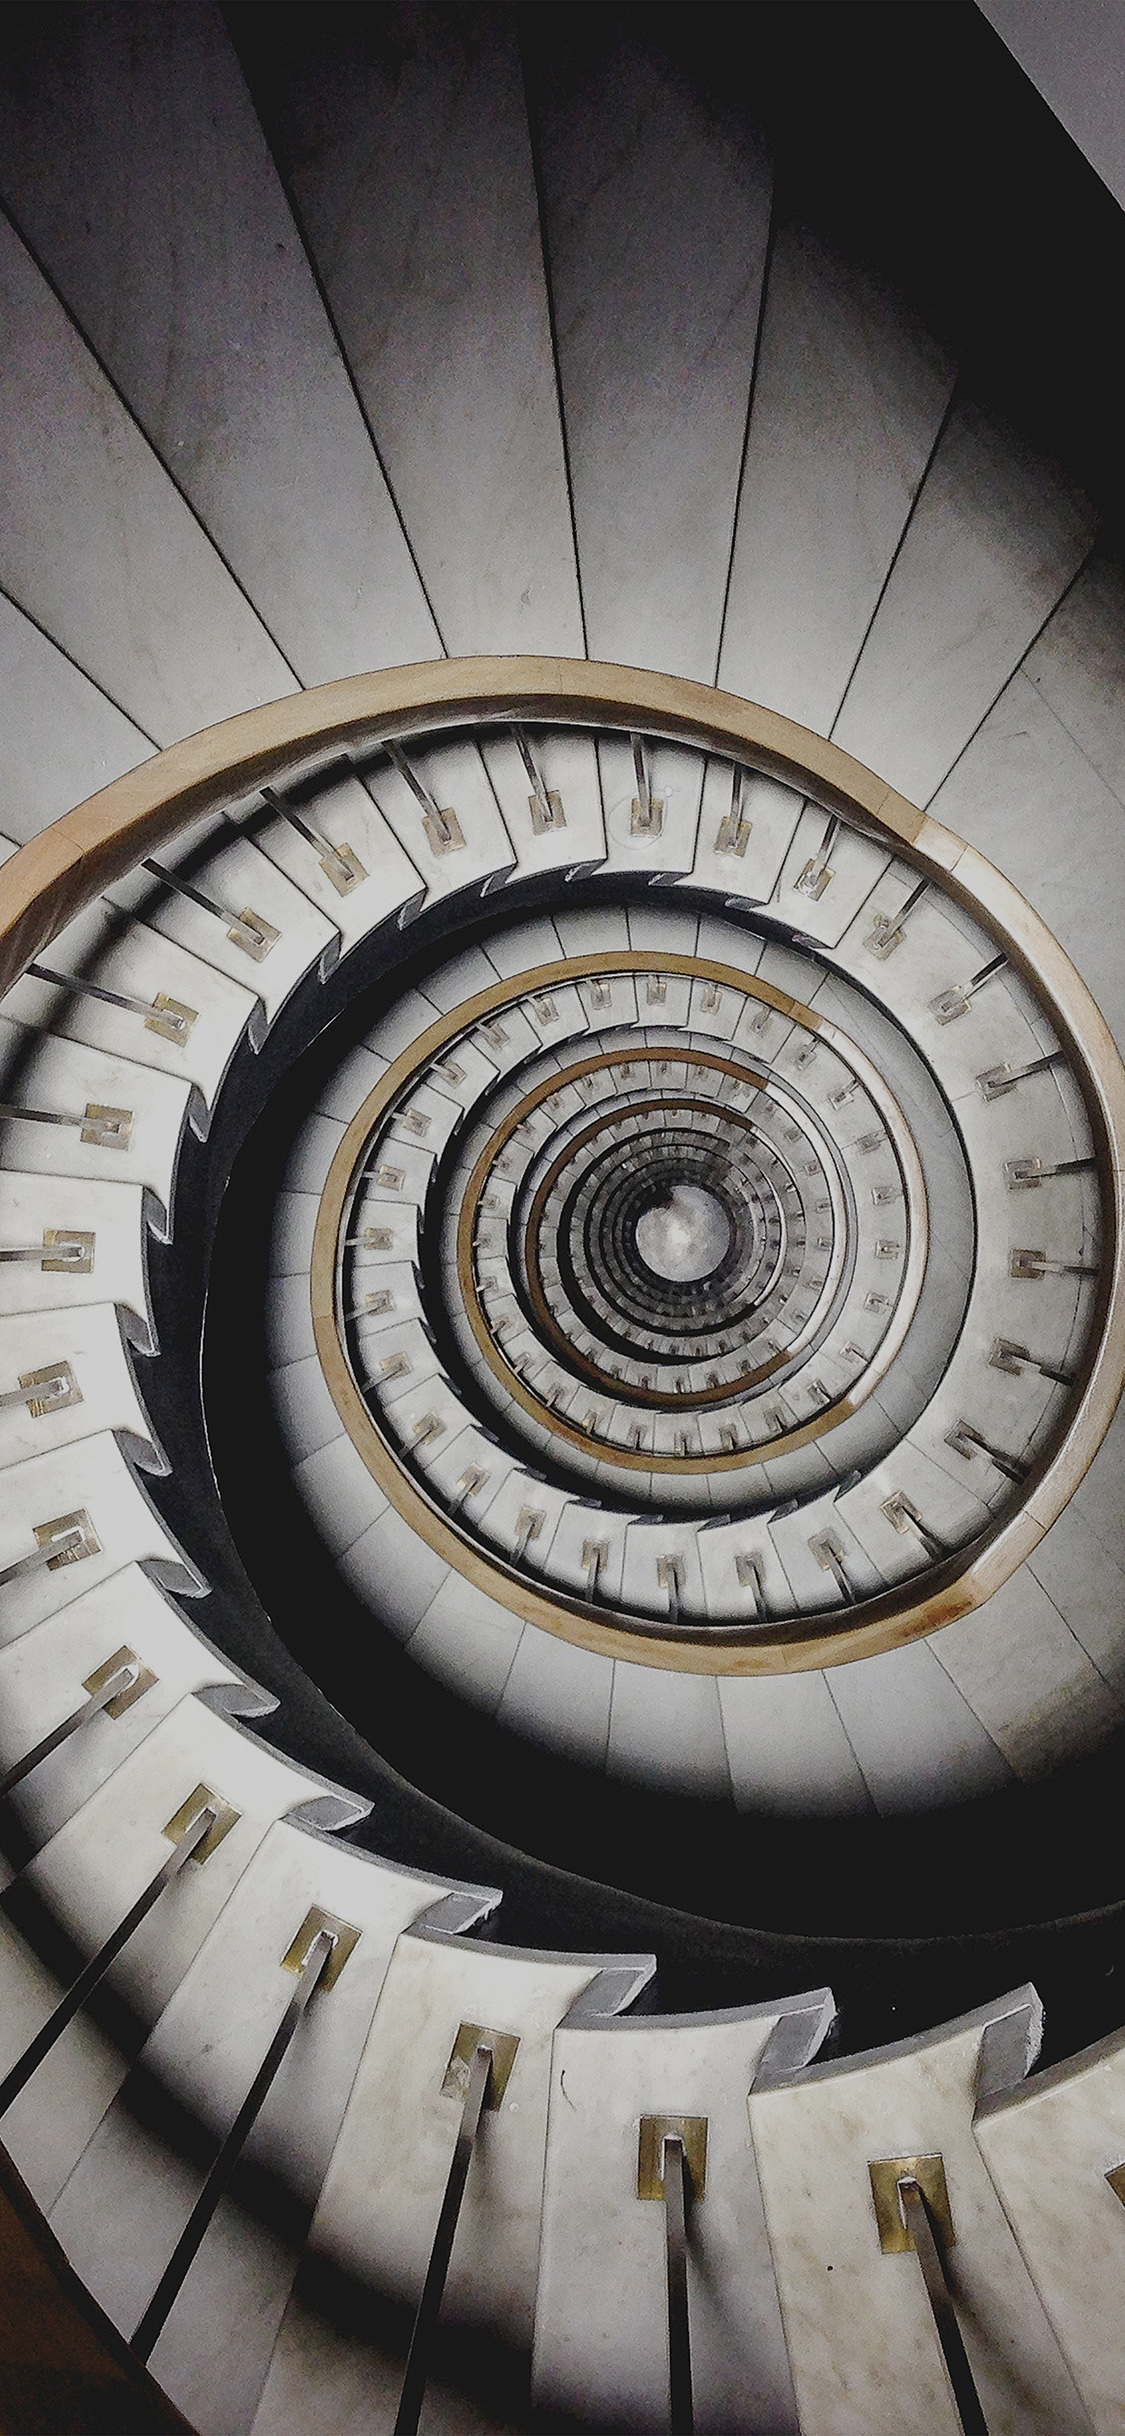 iPhoneXpapers.com-Apple-iPhone-wallpaper-vo42-spiral-stair-life-pattern